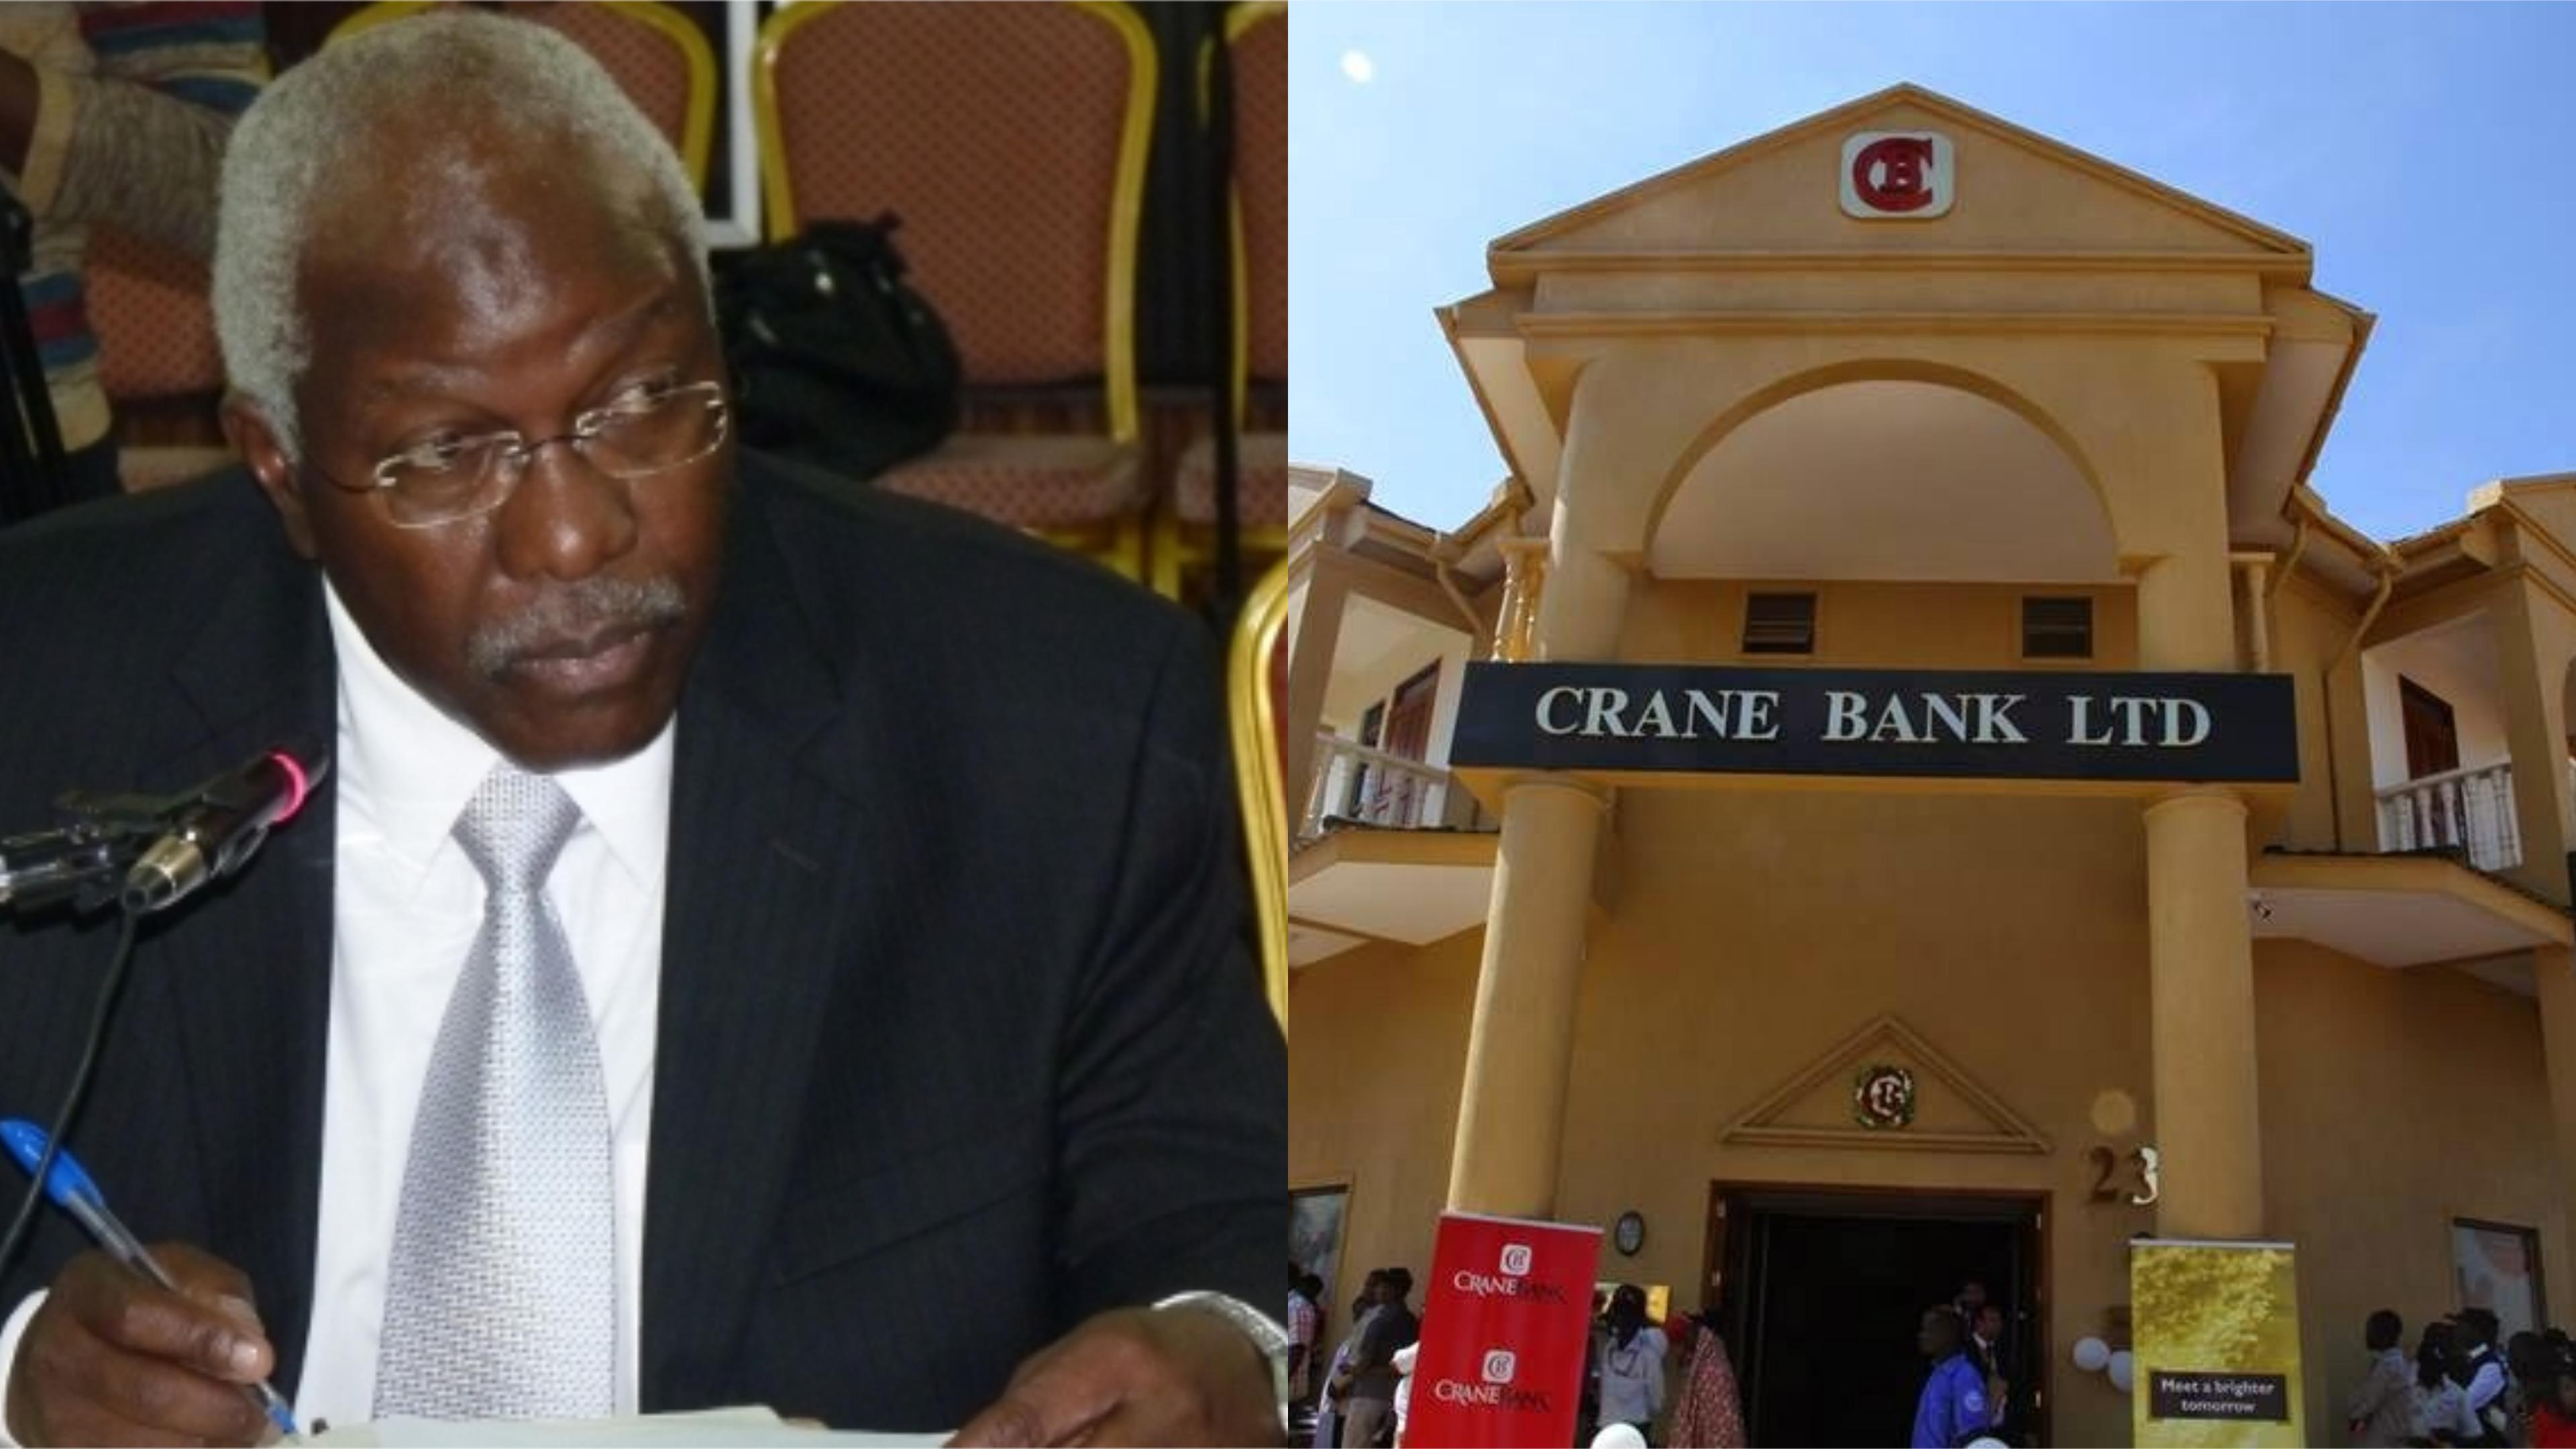 A report sanctioned by the Auditor General (John Muwanga) has faulted Uganda's bank regulator, Bank Of Uganda over the takeover and shutdown of Crane bank and other 6 financial institutions (FILE PHOTO)